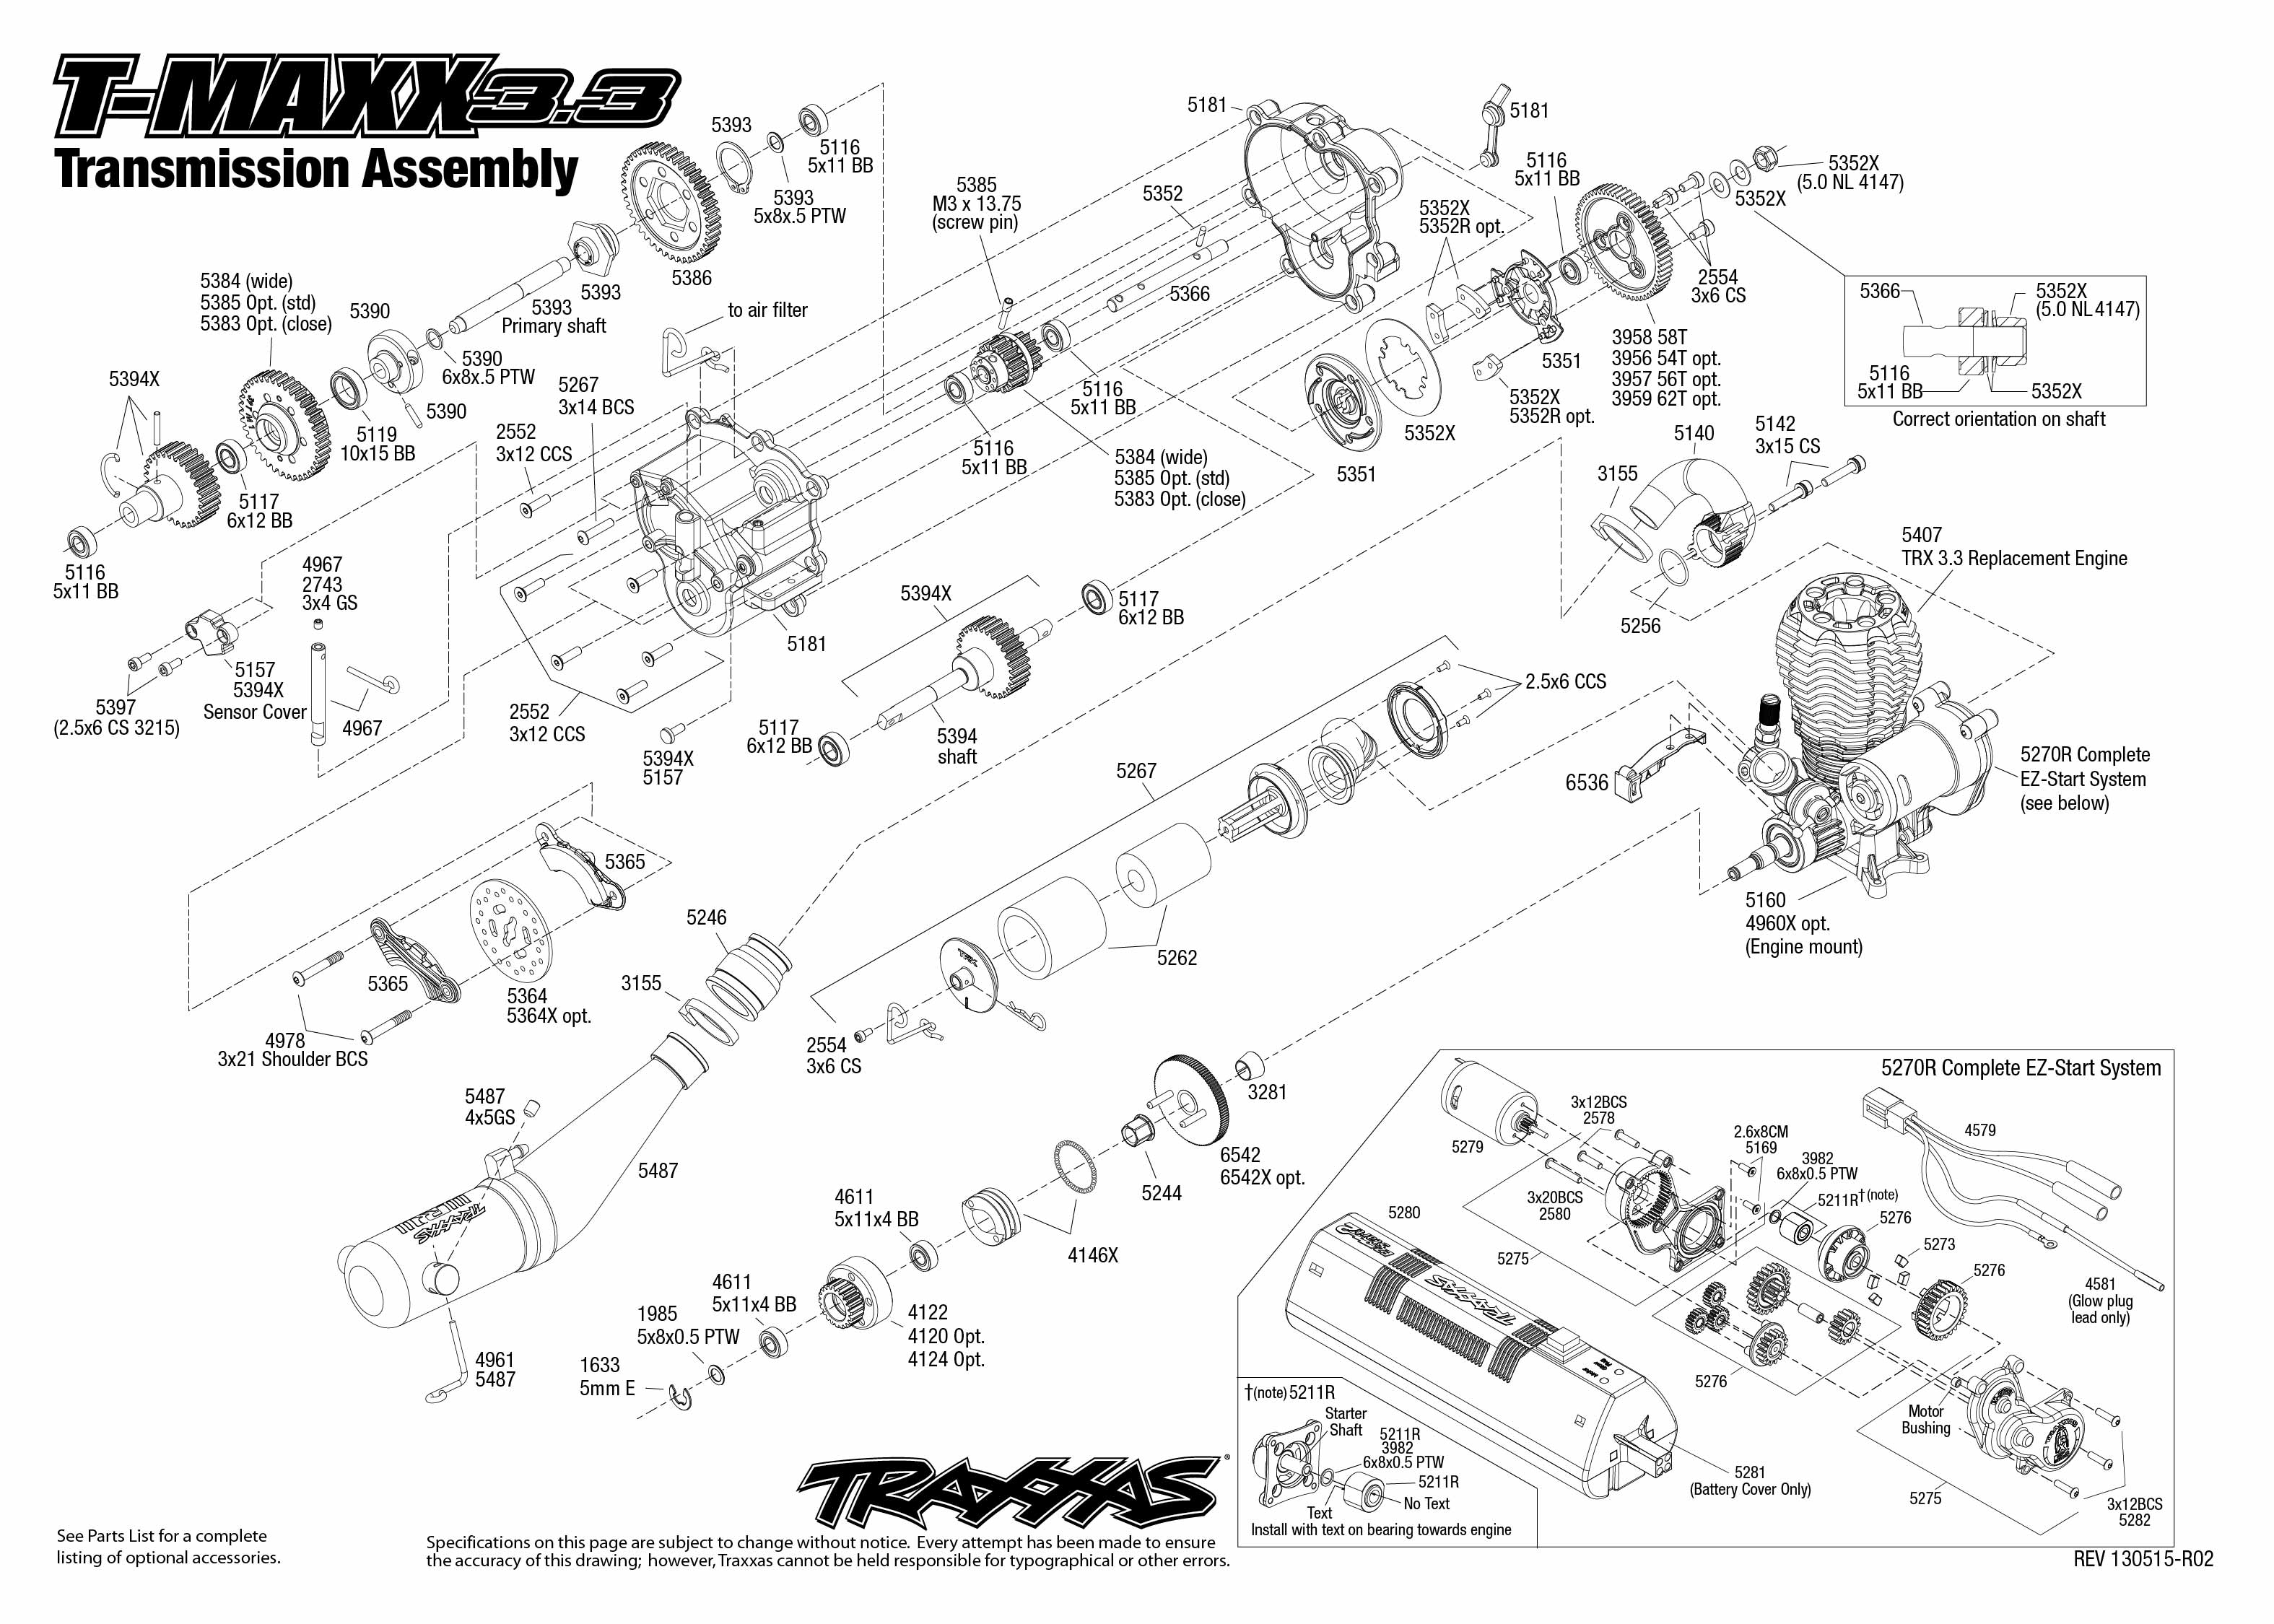 4907_Tmaxx33_TQi_explodedviews 130515_4907 Transmission Assembly 4907 transmission exploded view (t maxx 3 3) traxxas traxxas revo 3.3 wiring diagram at honlapkeszites.co